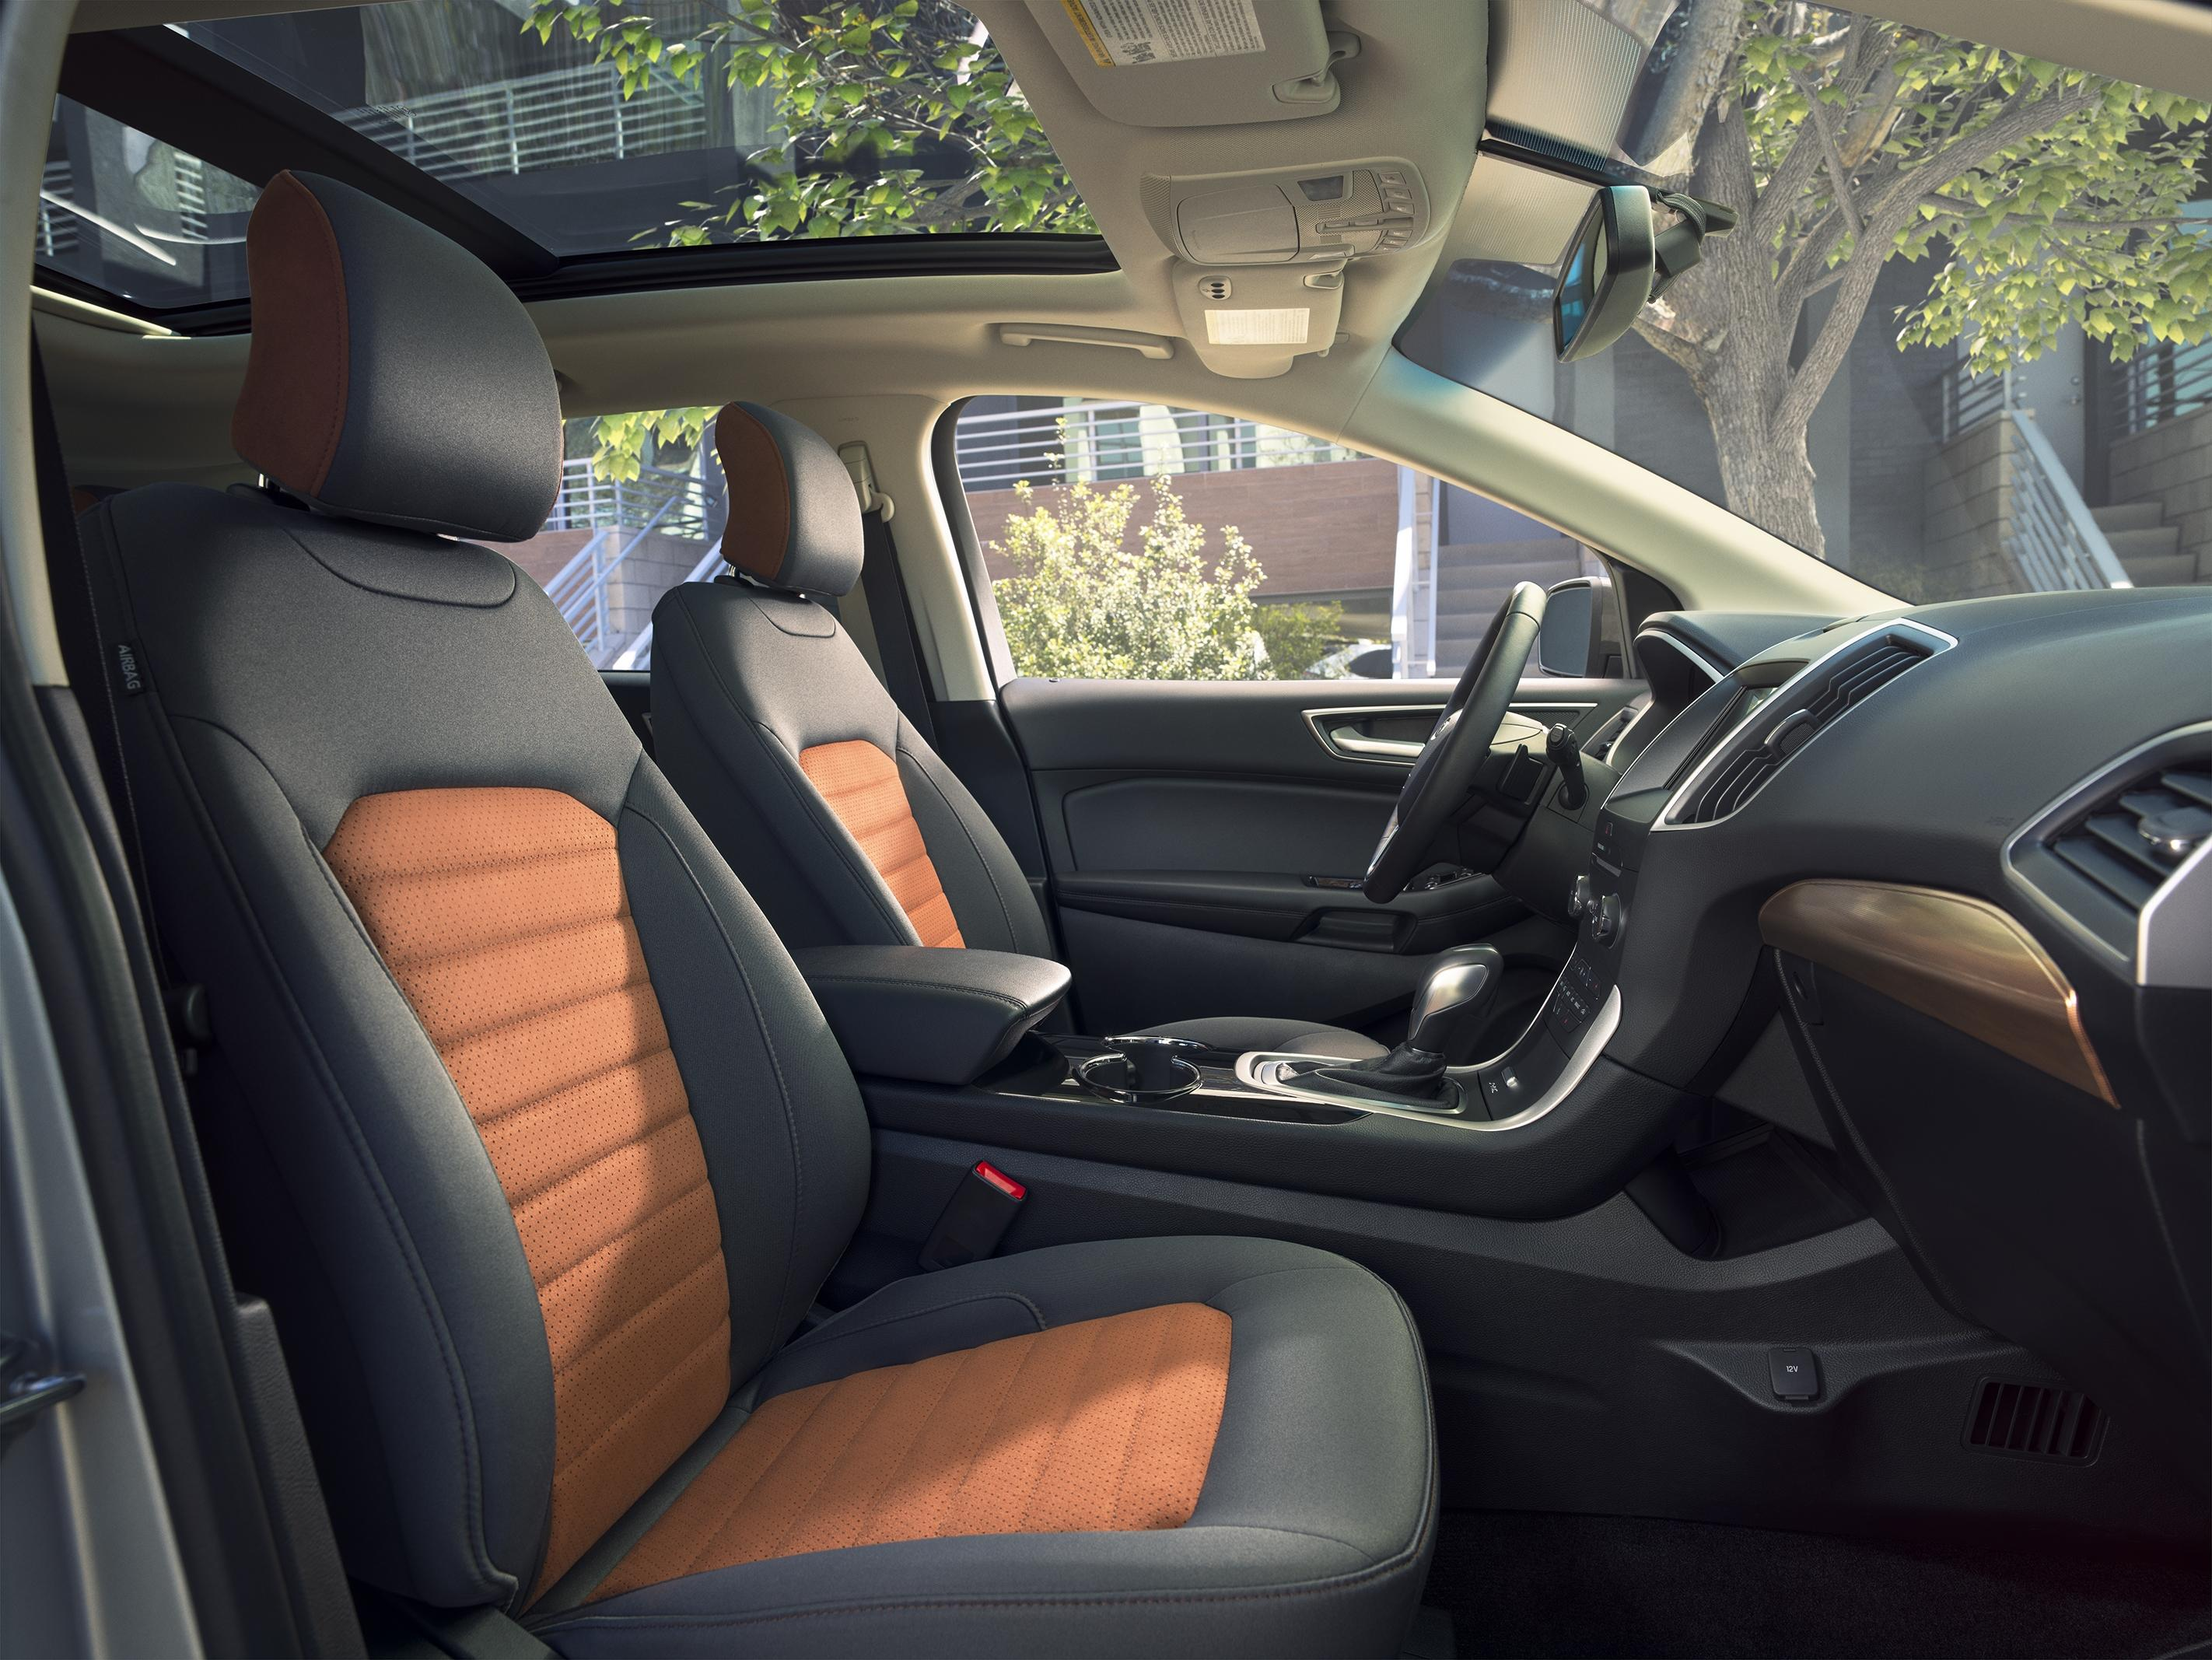 When you're looking at a mid-size SUV purchase, the 2018 Ford Edge has been  a top consideration. There's nothing quite like it on the market today.